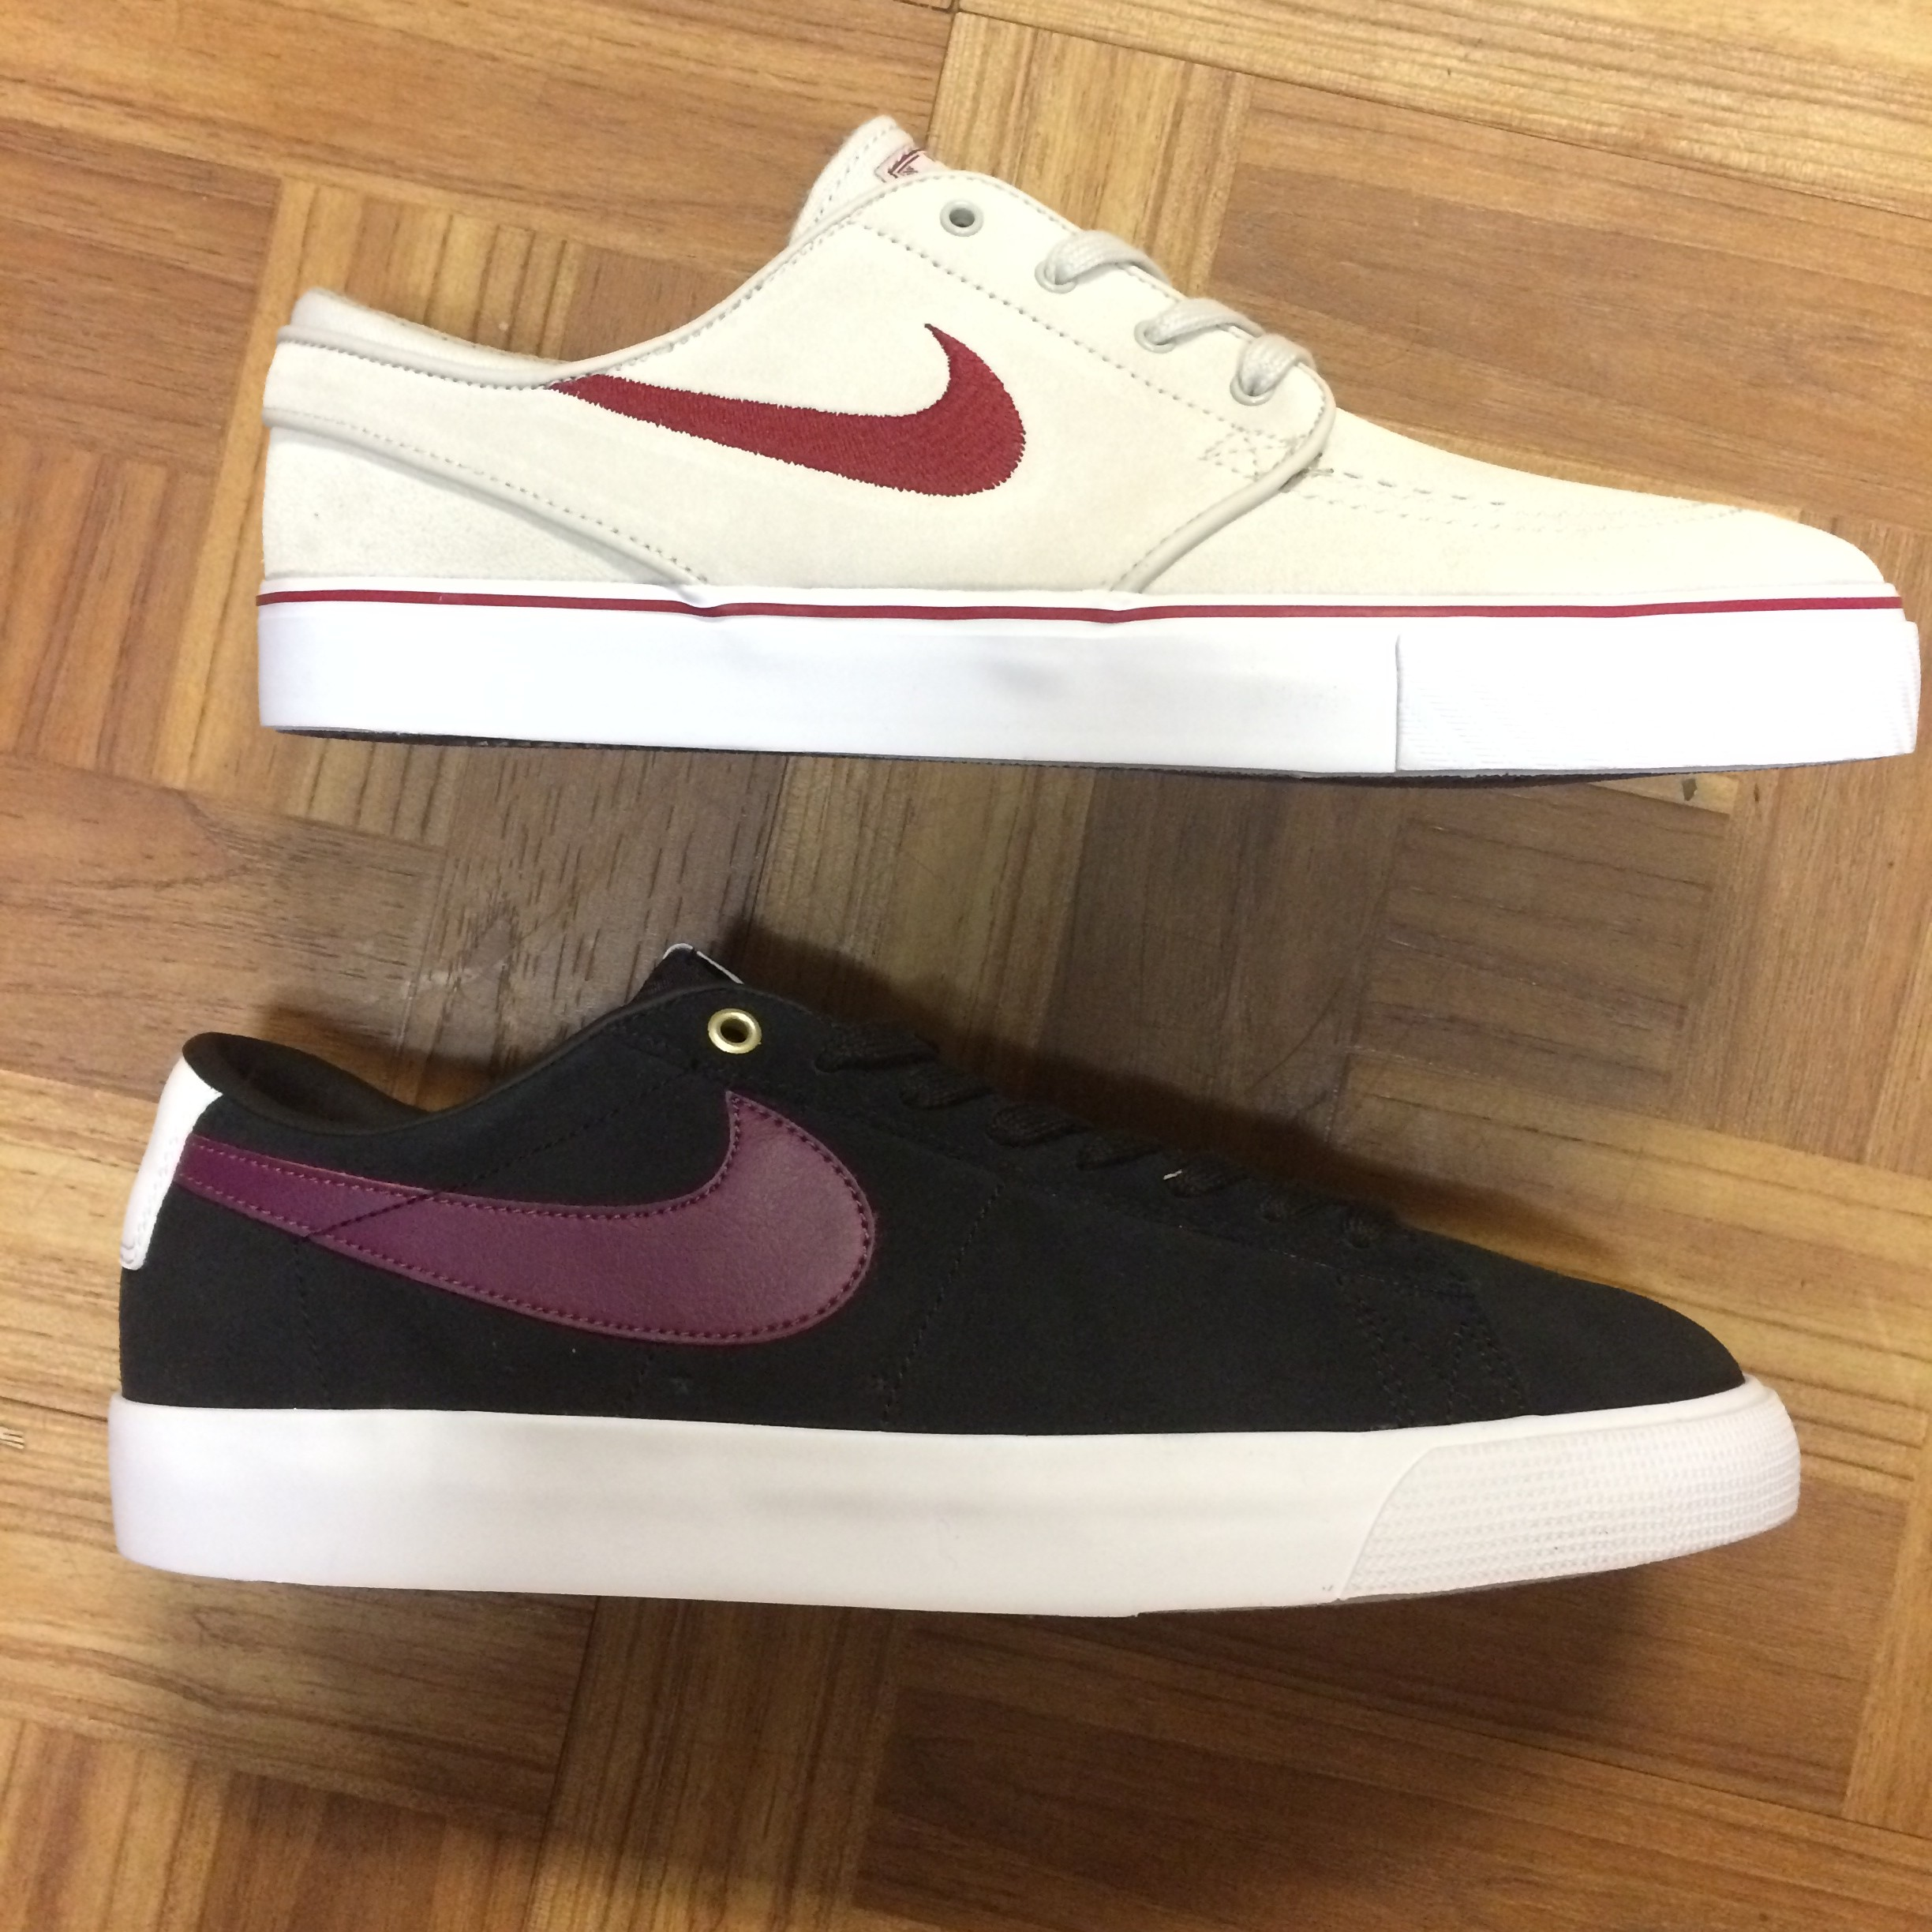 online retailer 4f35d 487cb New From Nike SB At Our Harford Rd Location Is The Janoski ...